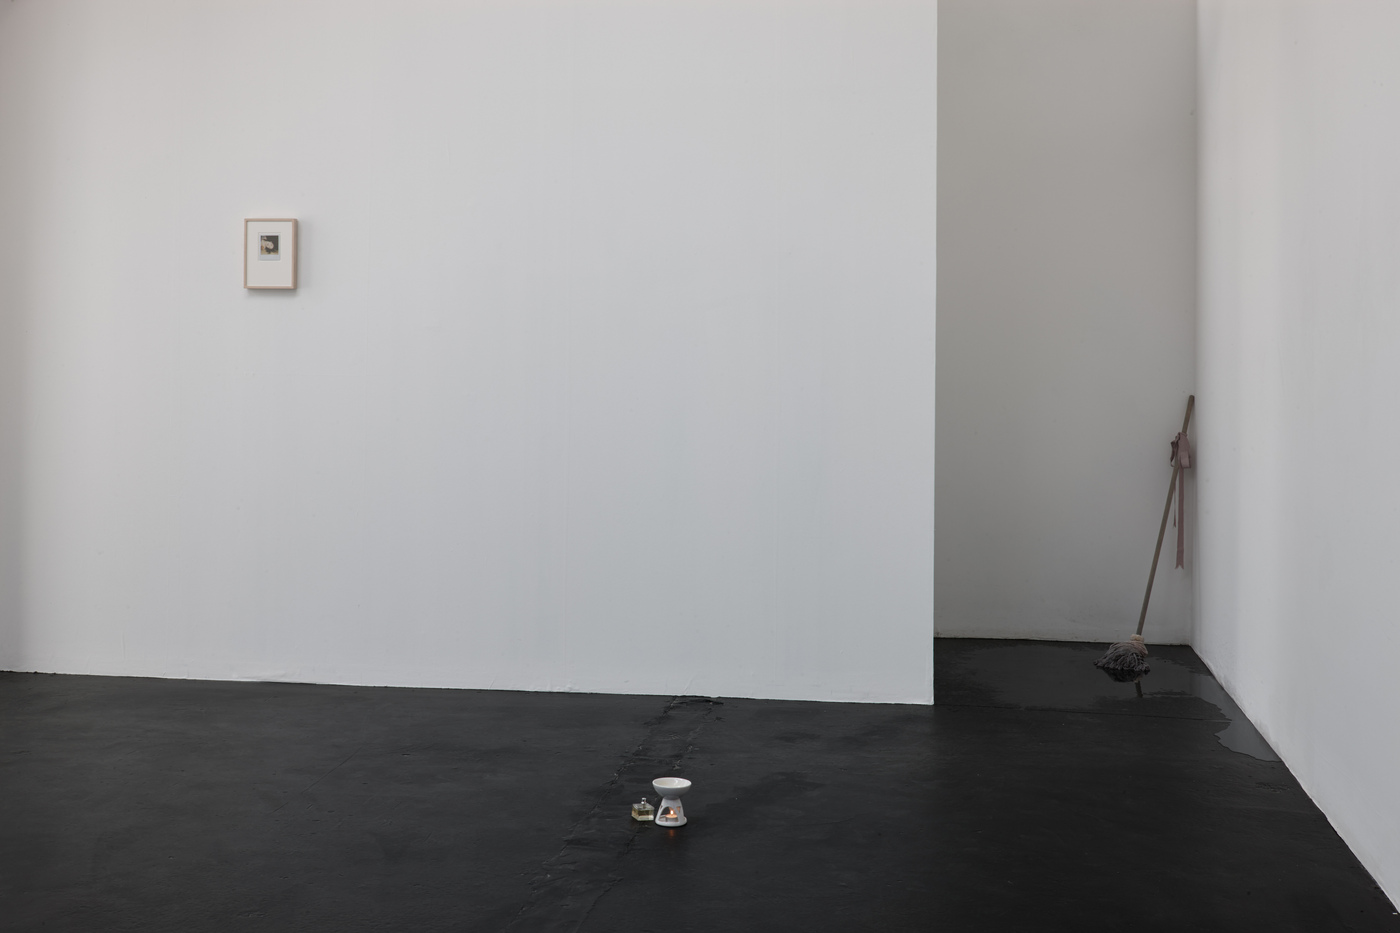 Take this Gum and Stick it - Installation View IV